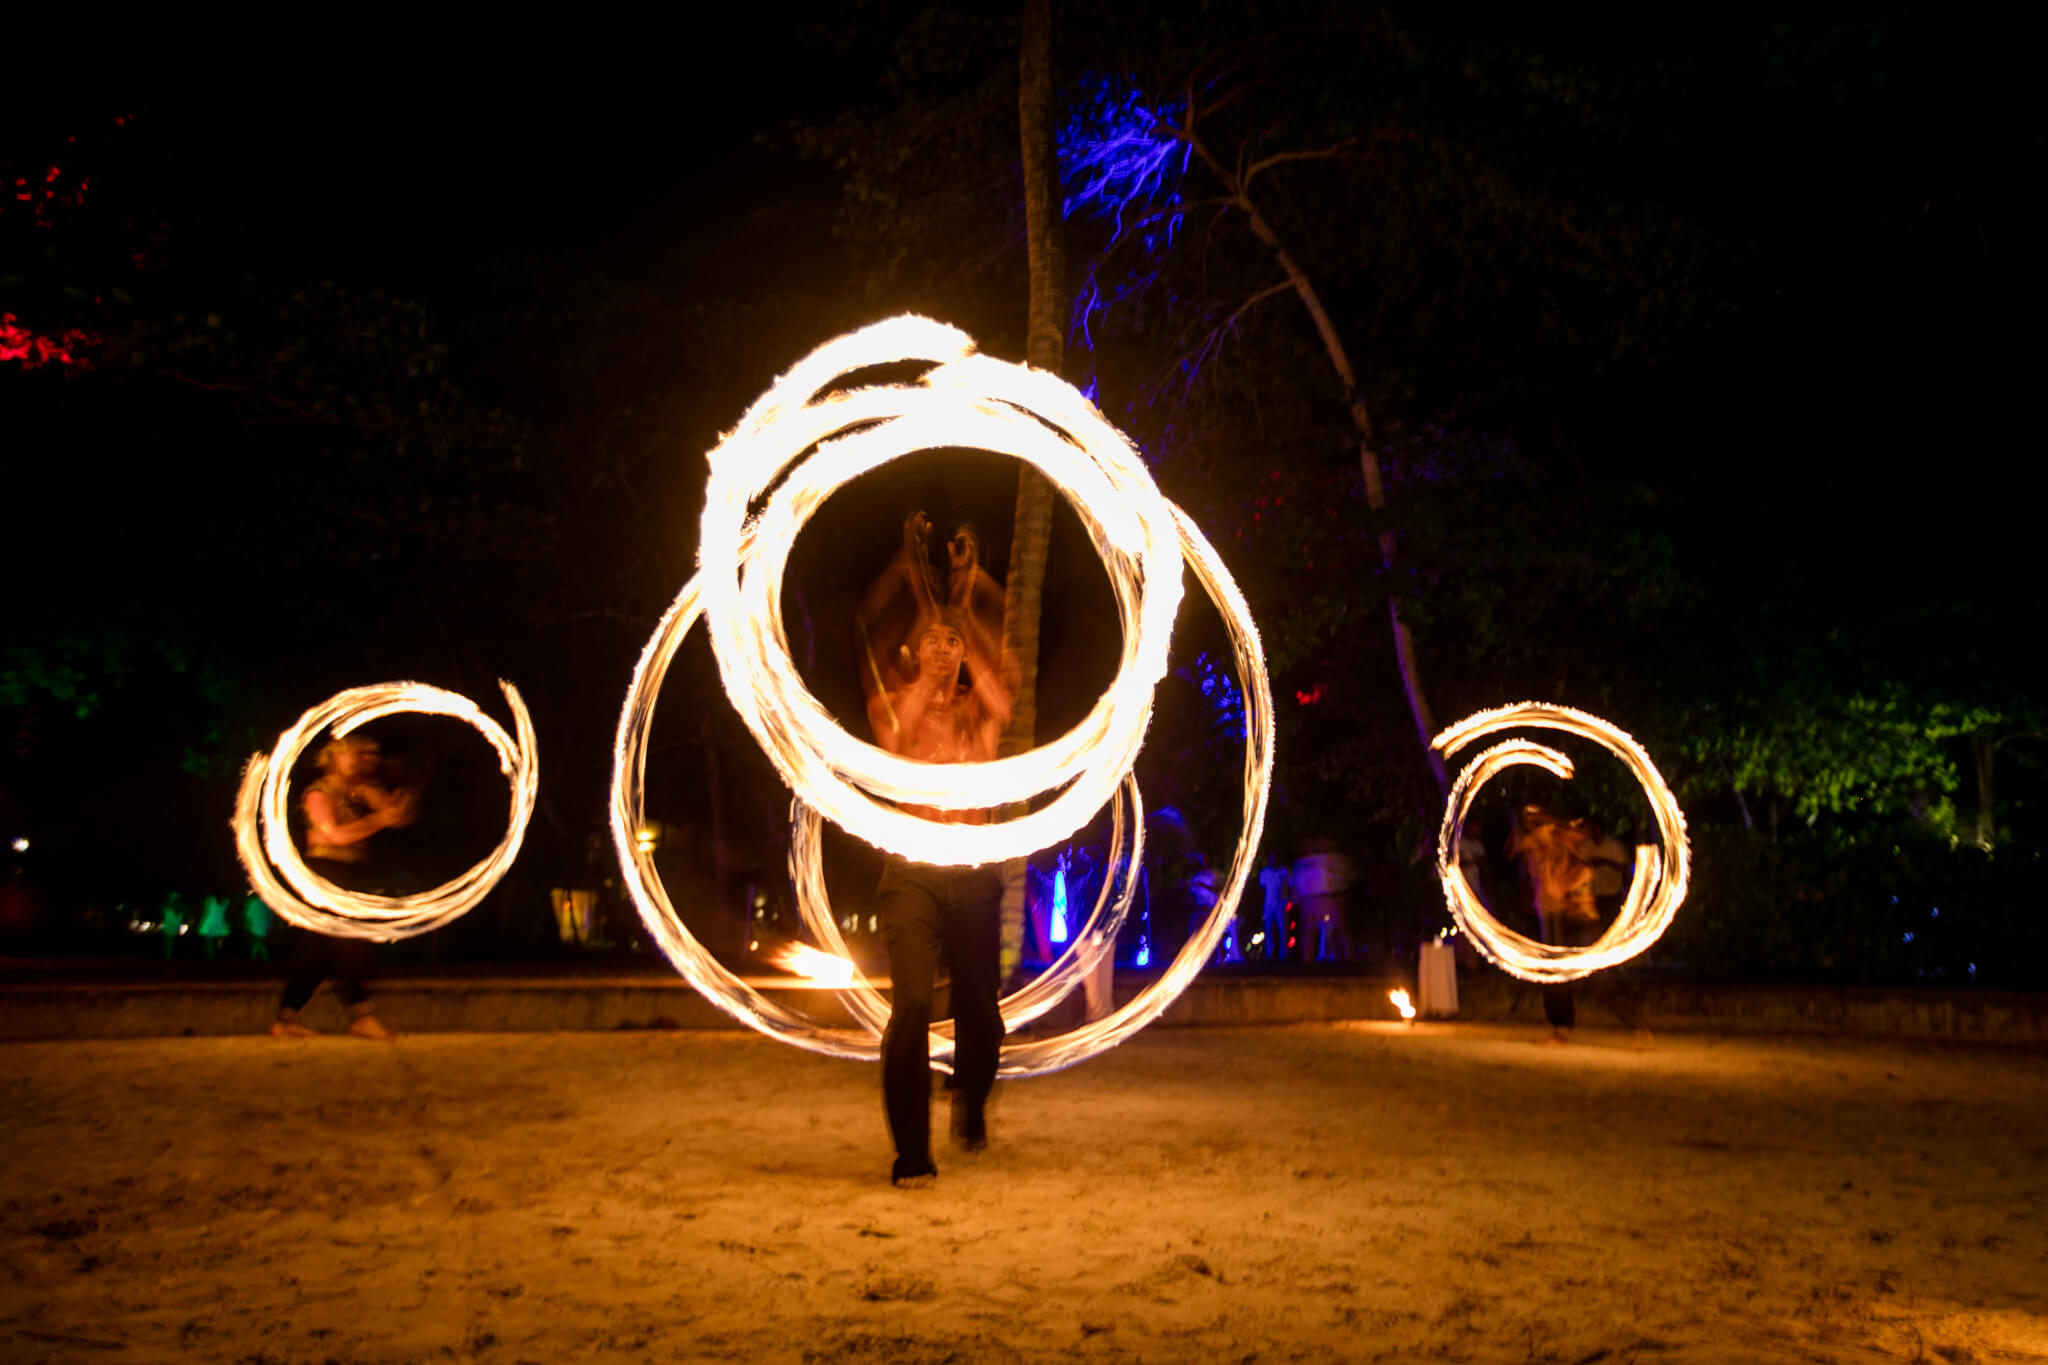 Spectacular fire show